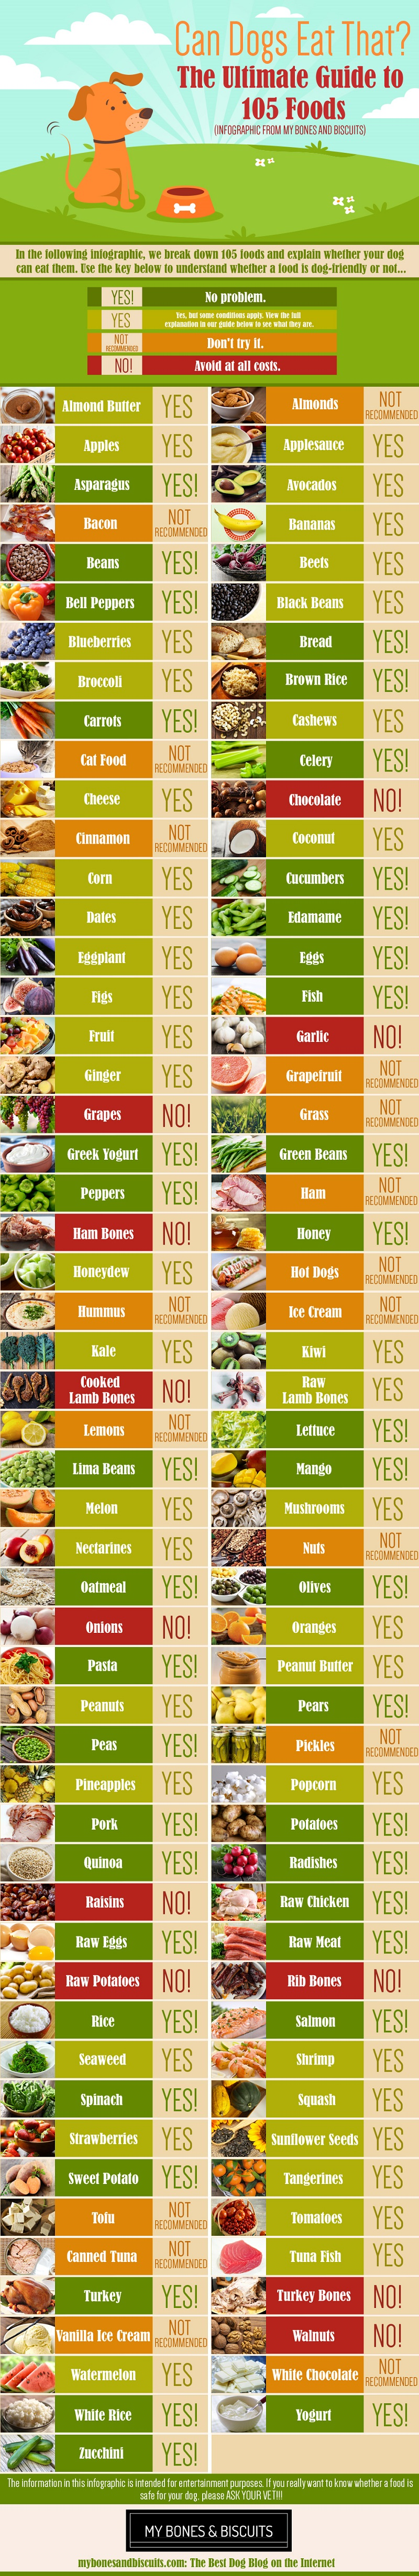 Comprehensive Ready Reckoner of 105 Dog-Friendly and Dog-Unfriendly Foods - Infographic